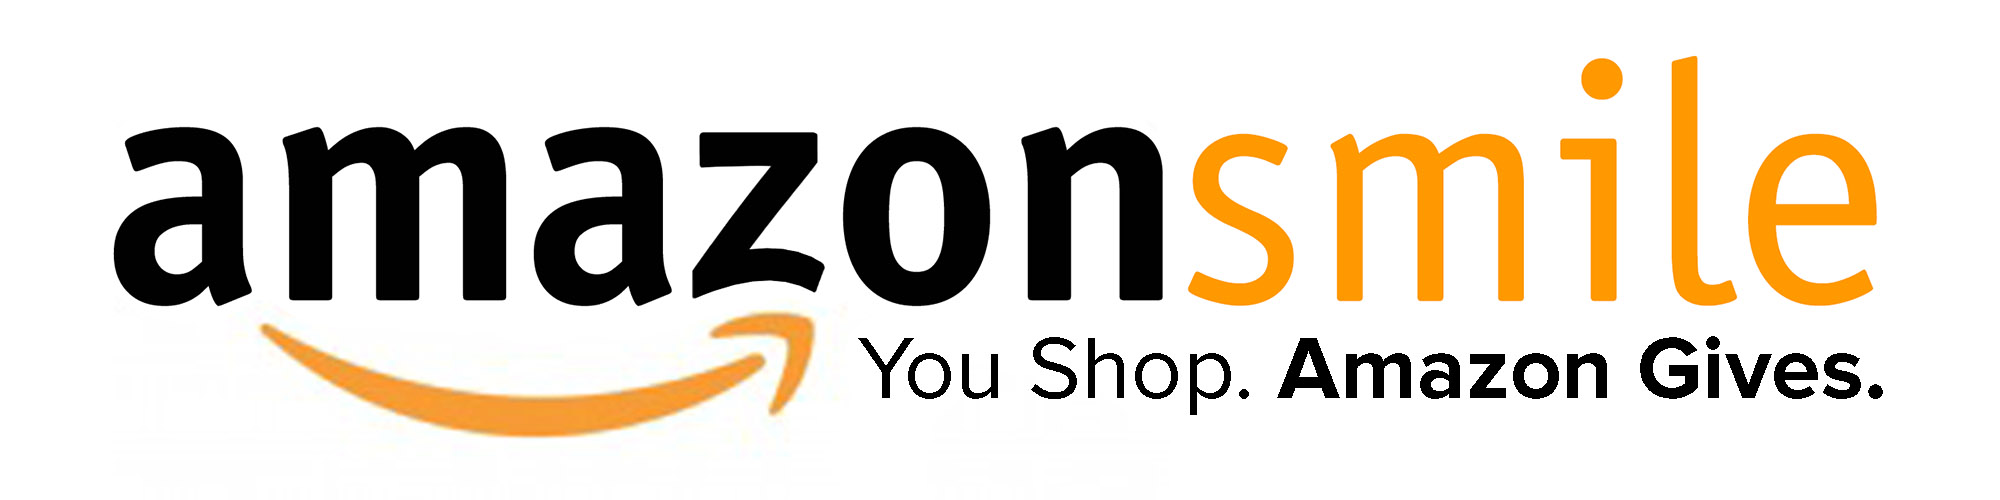 Amazon Smile / you shop Amazon gives